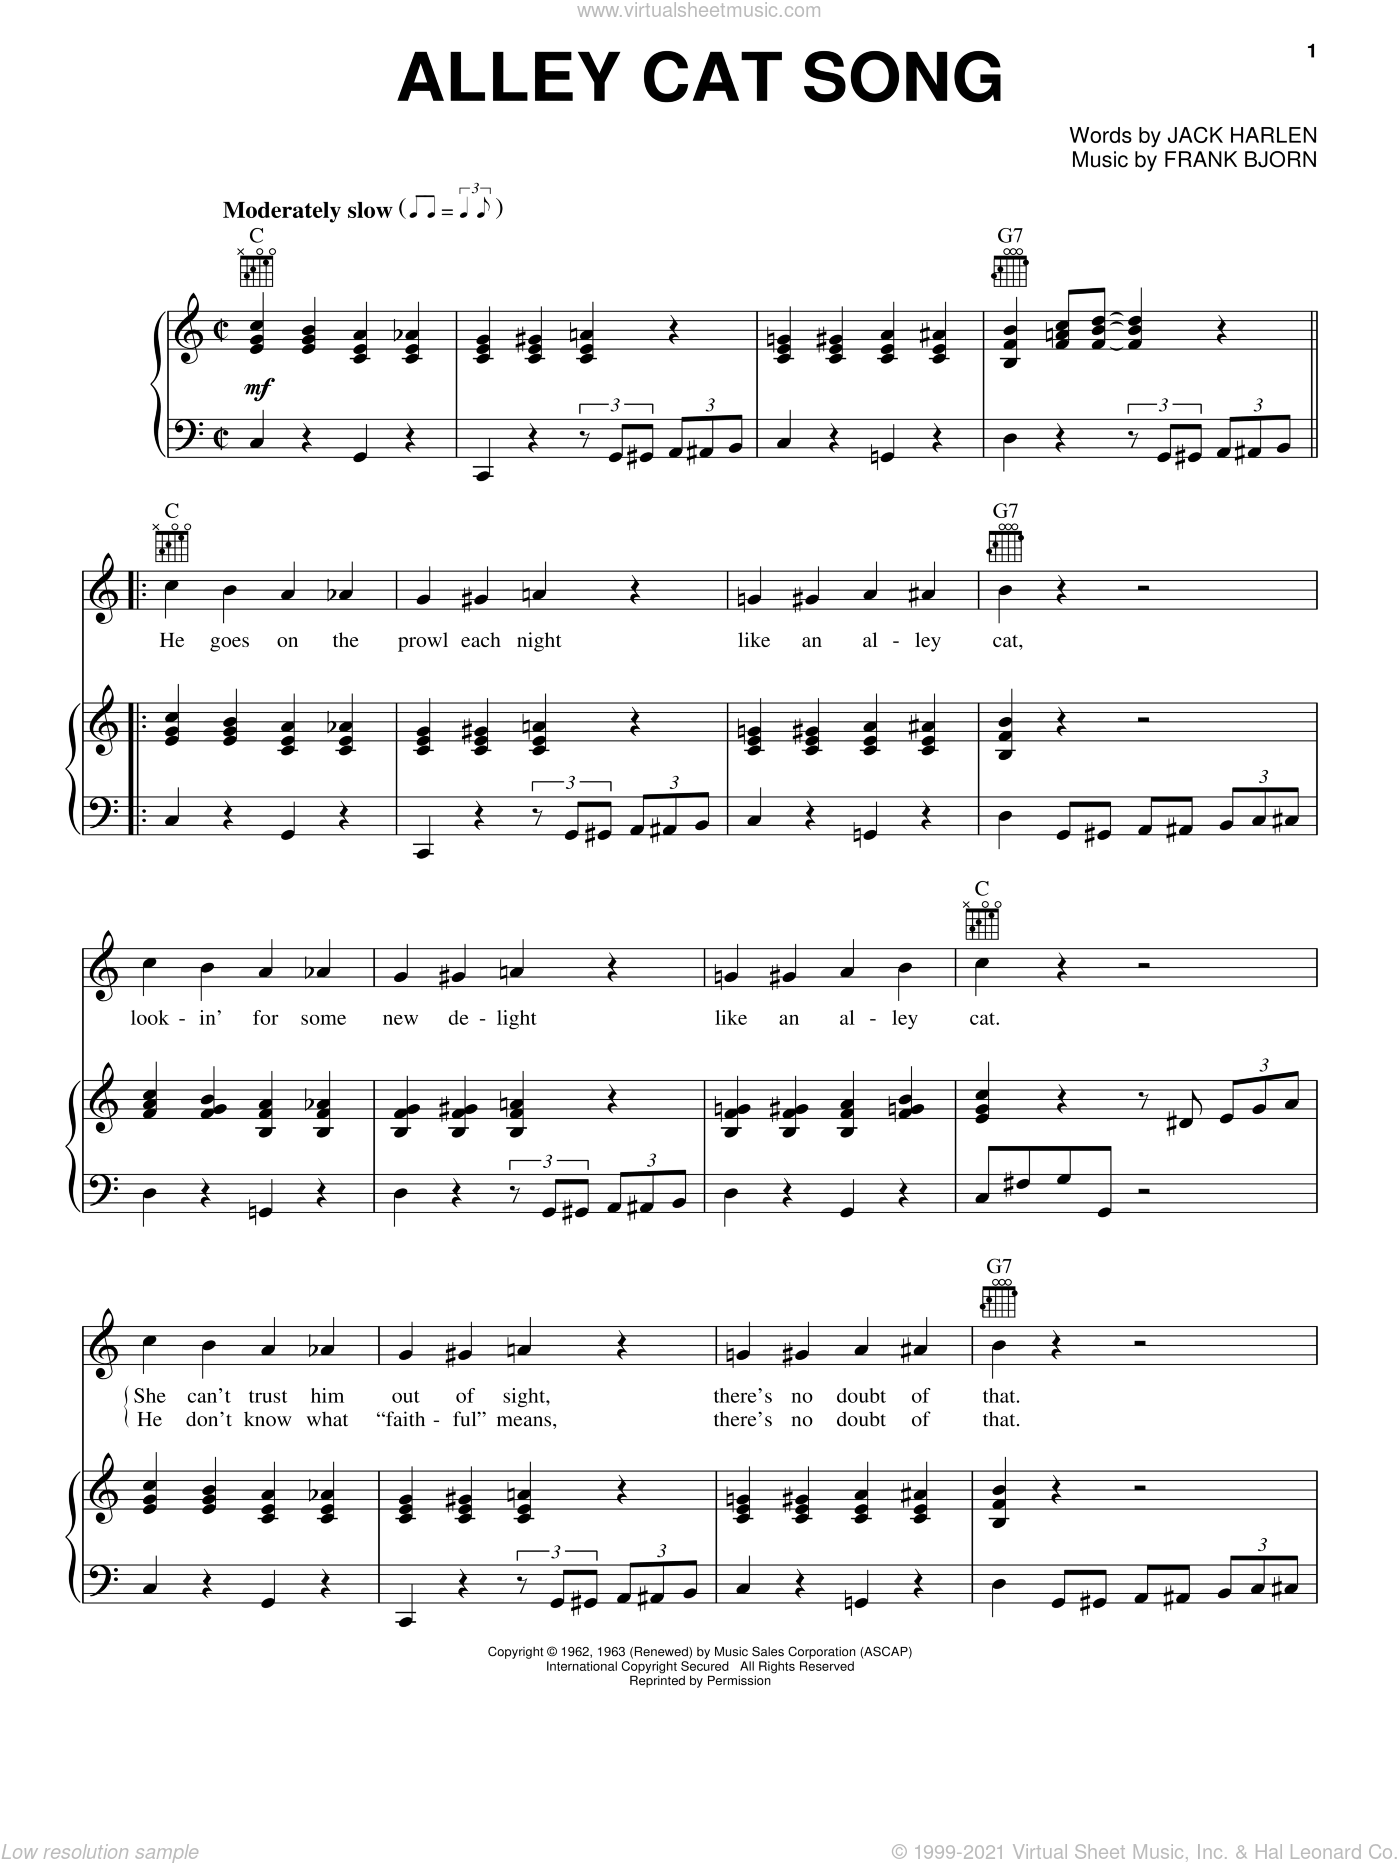 Alley Cat Song sheet music for voice, piano or guitar by Jack Harlen